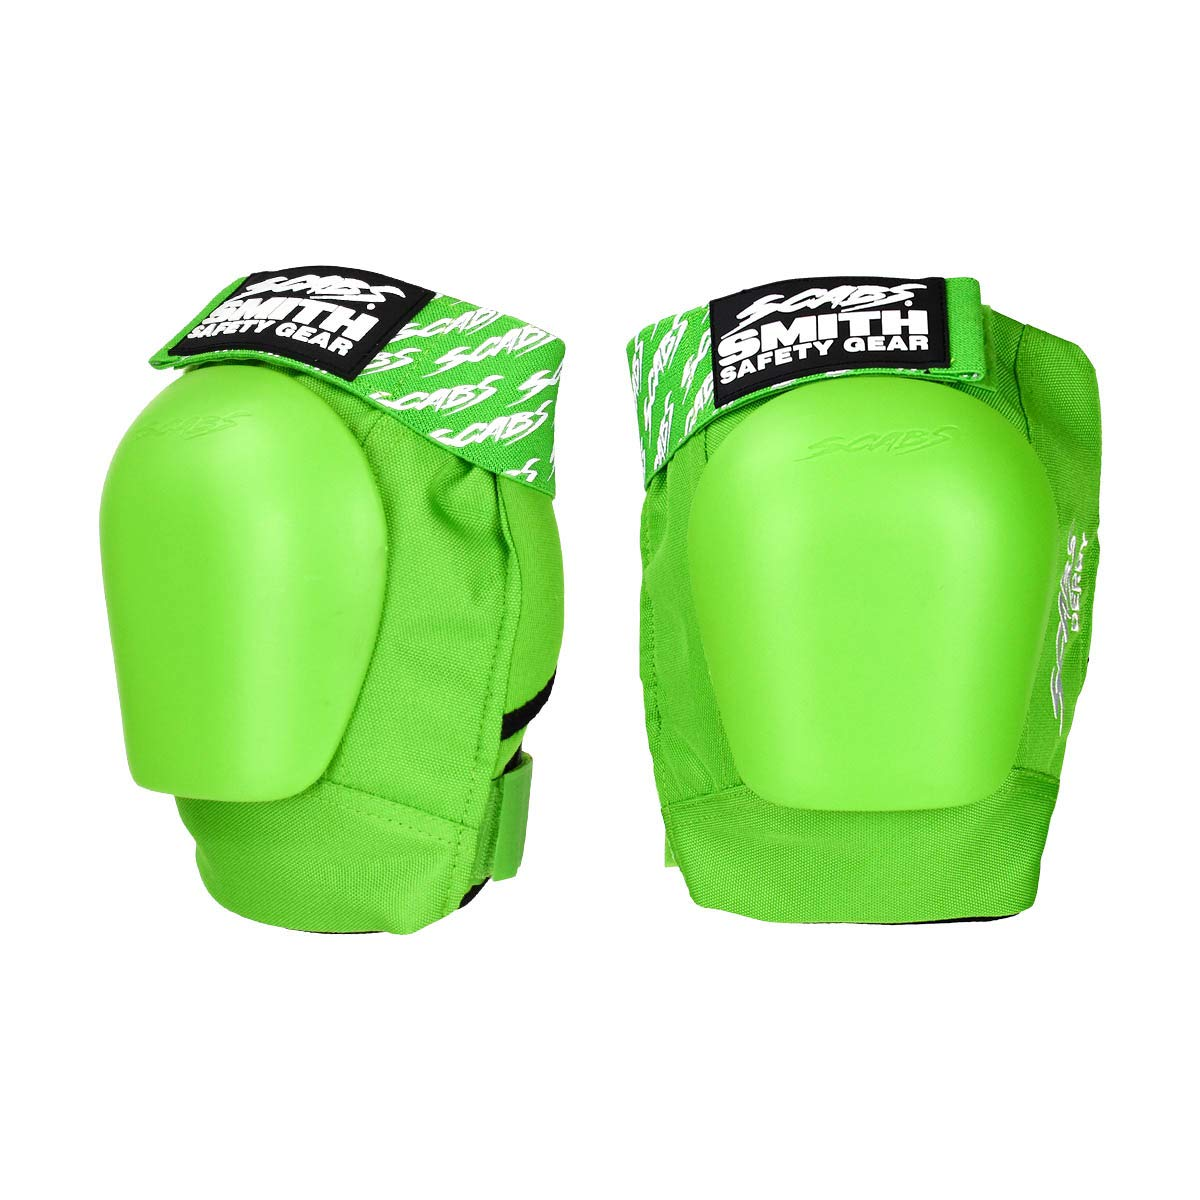 Smith Safety Gear Scabs Derby Knee Pad, Lime, Small